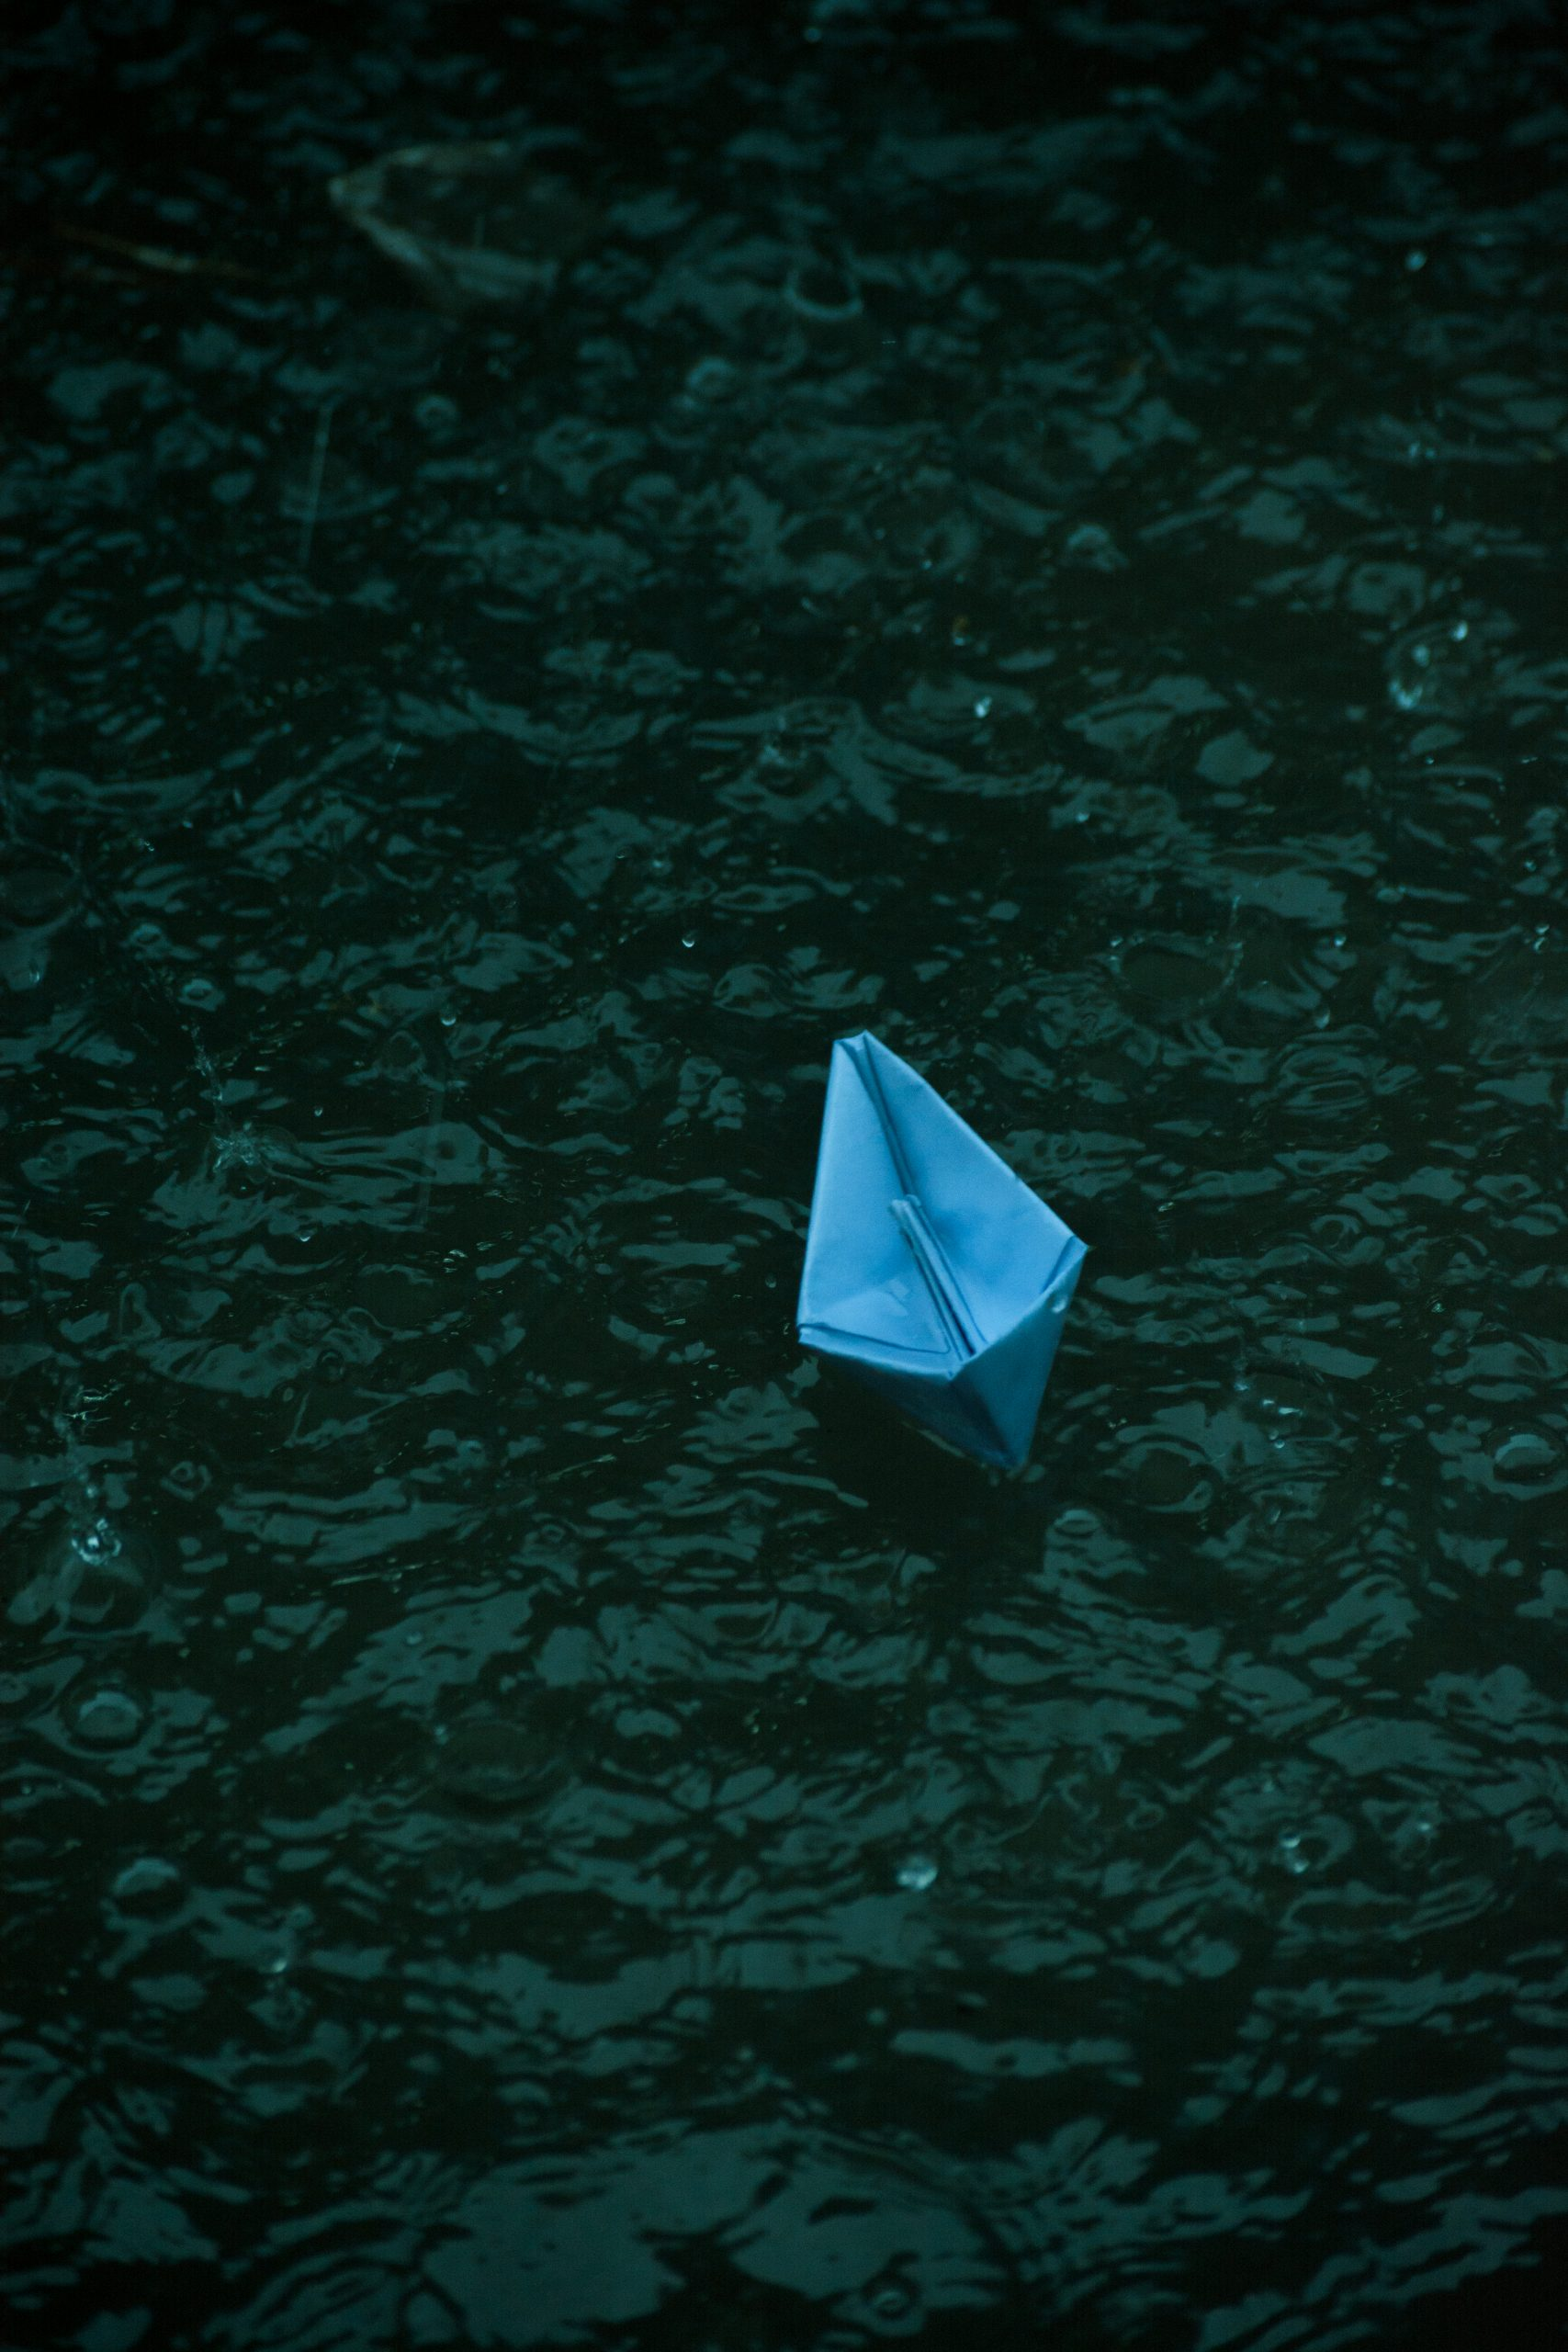 A paper boat in water